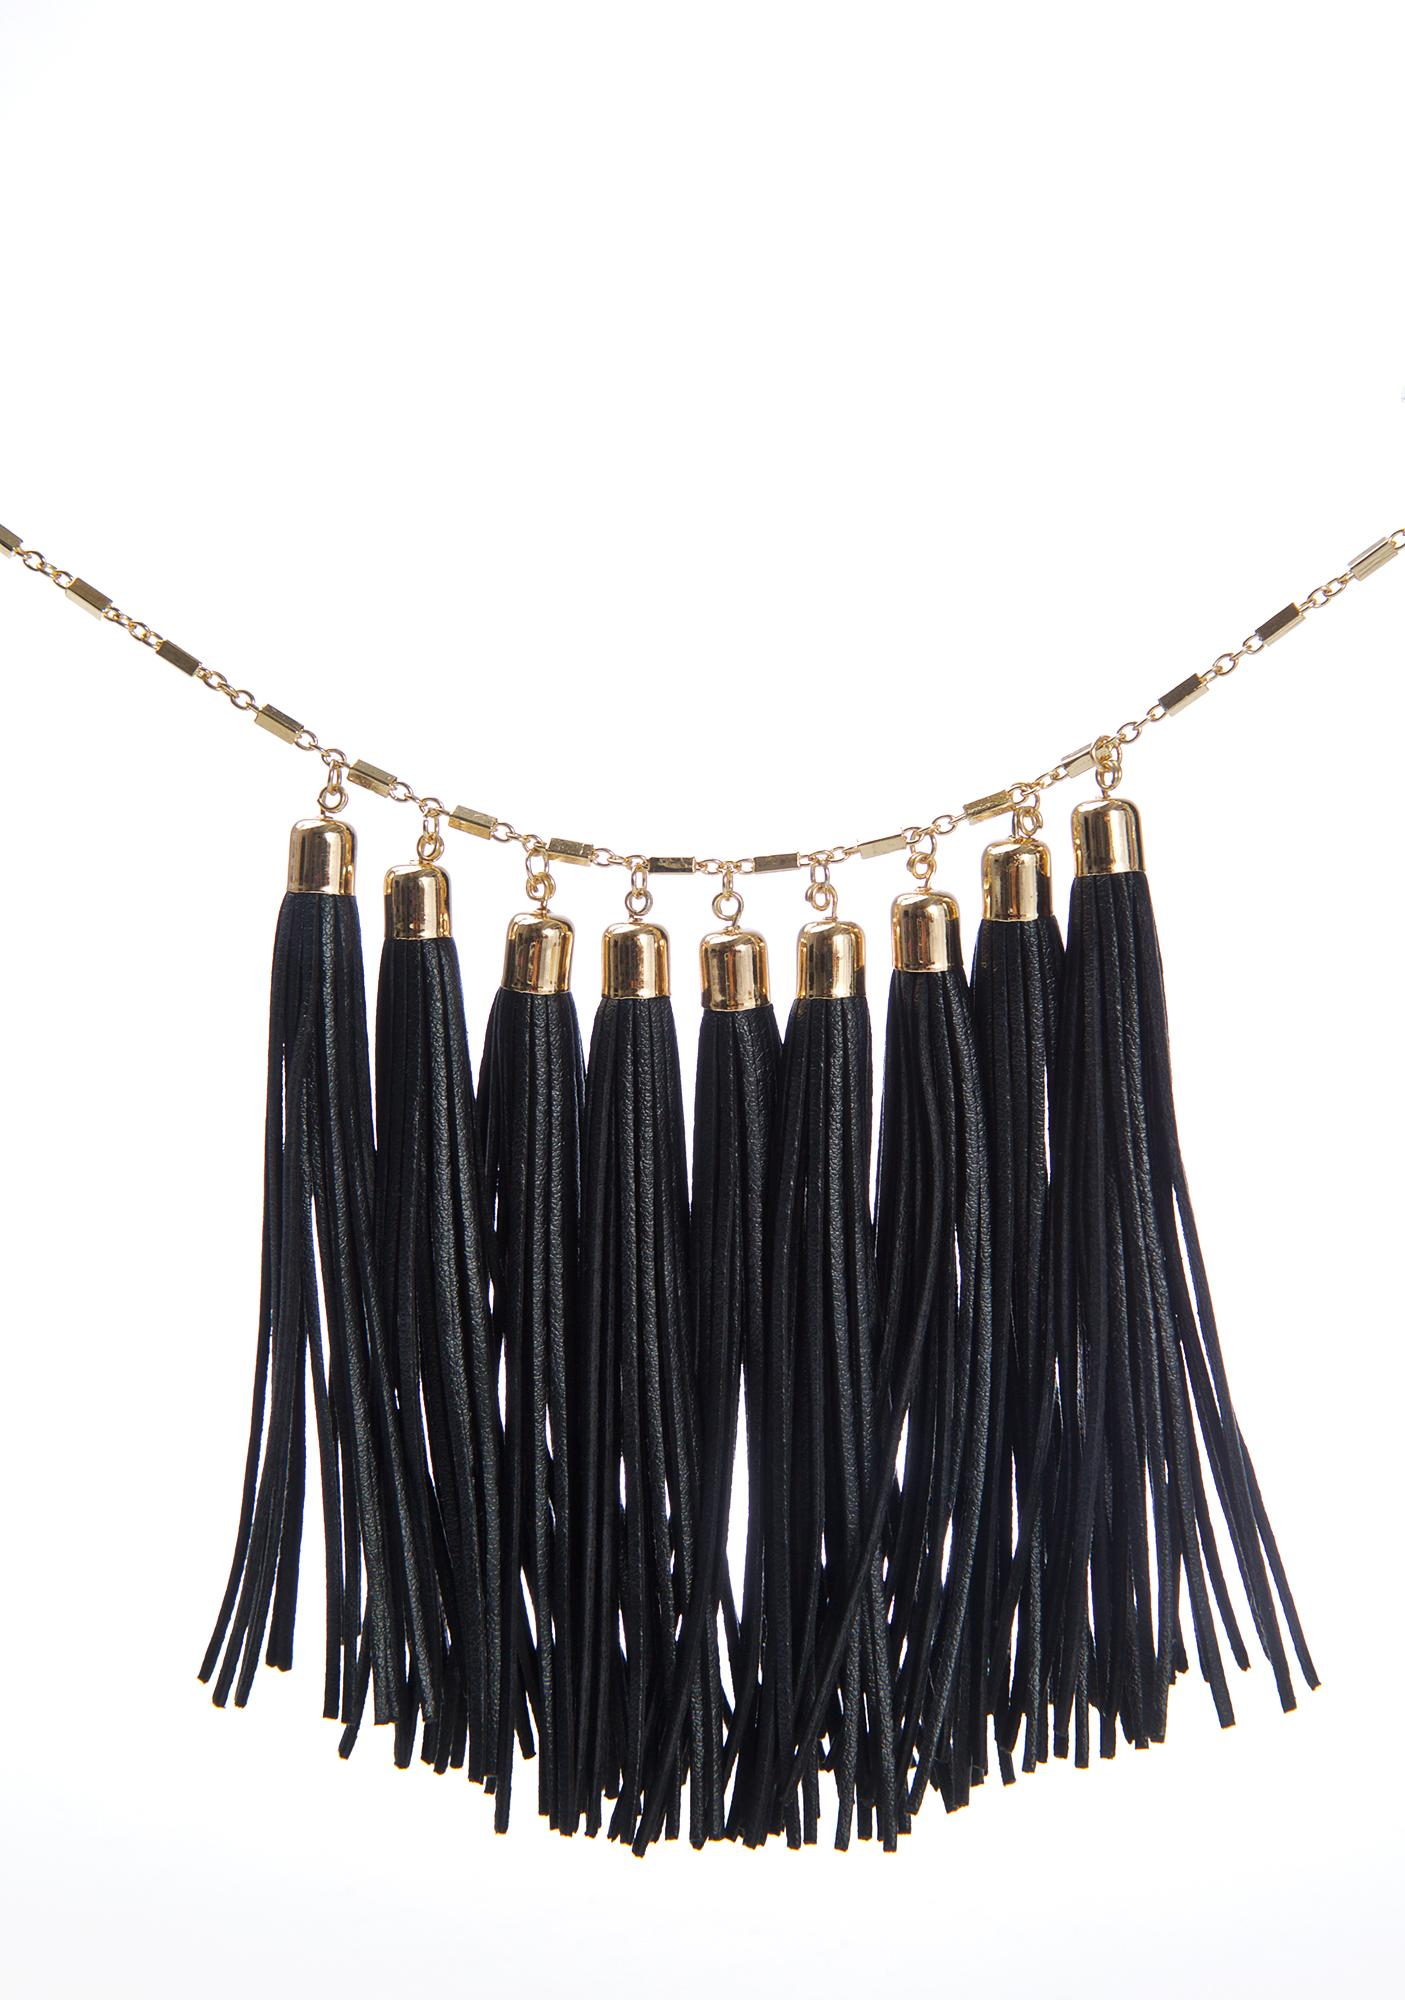 Black Magnolia Tassel Necklace